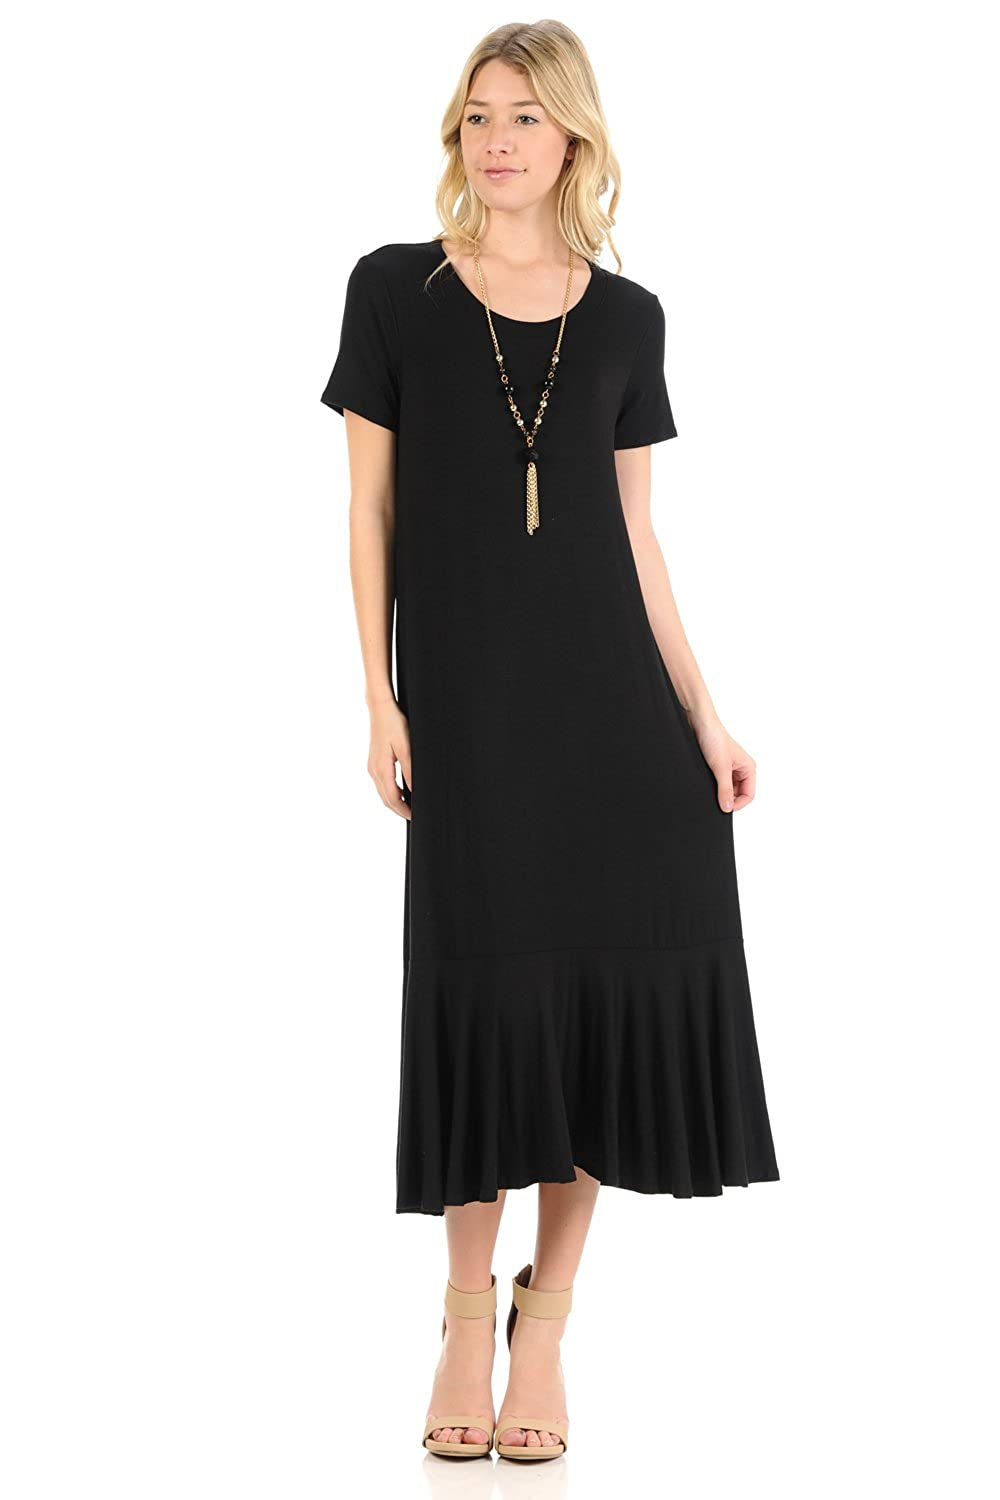 Great Gatsby Dress – Great Gatsby Dresses for Sale iconic luxe Womens A-Line Ruffle Hemline Midi Dress $22.99 AT vintagedancer.com